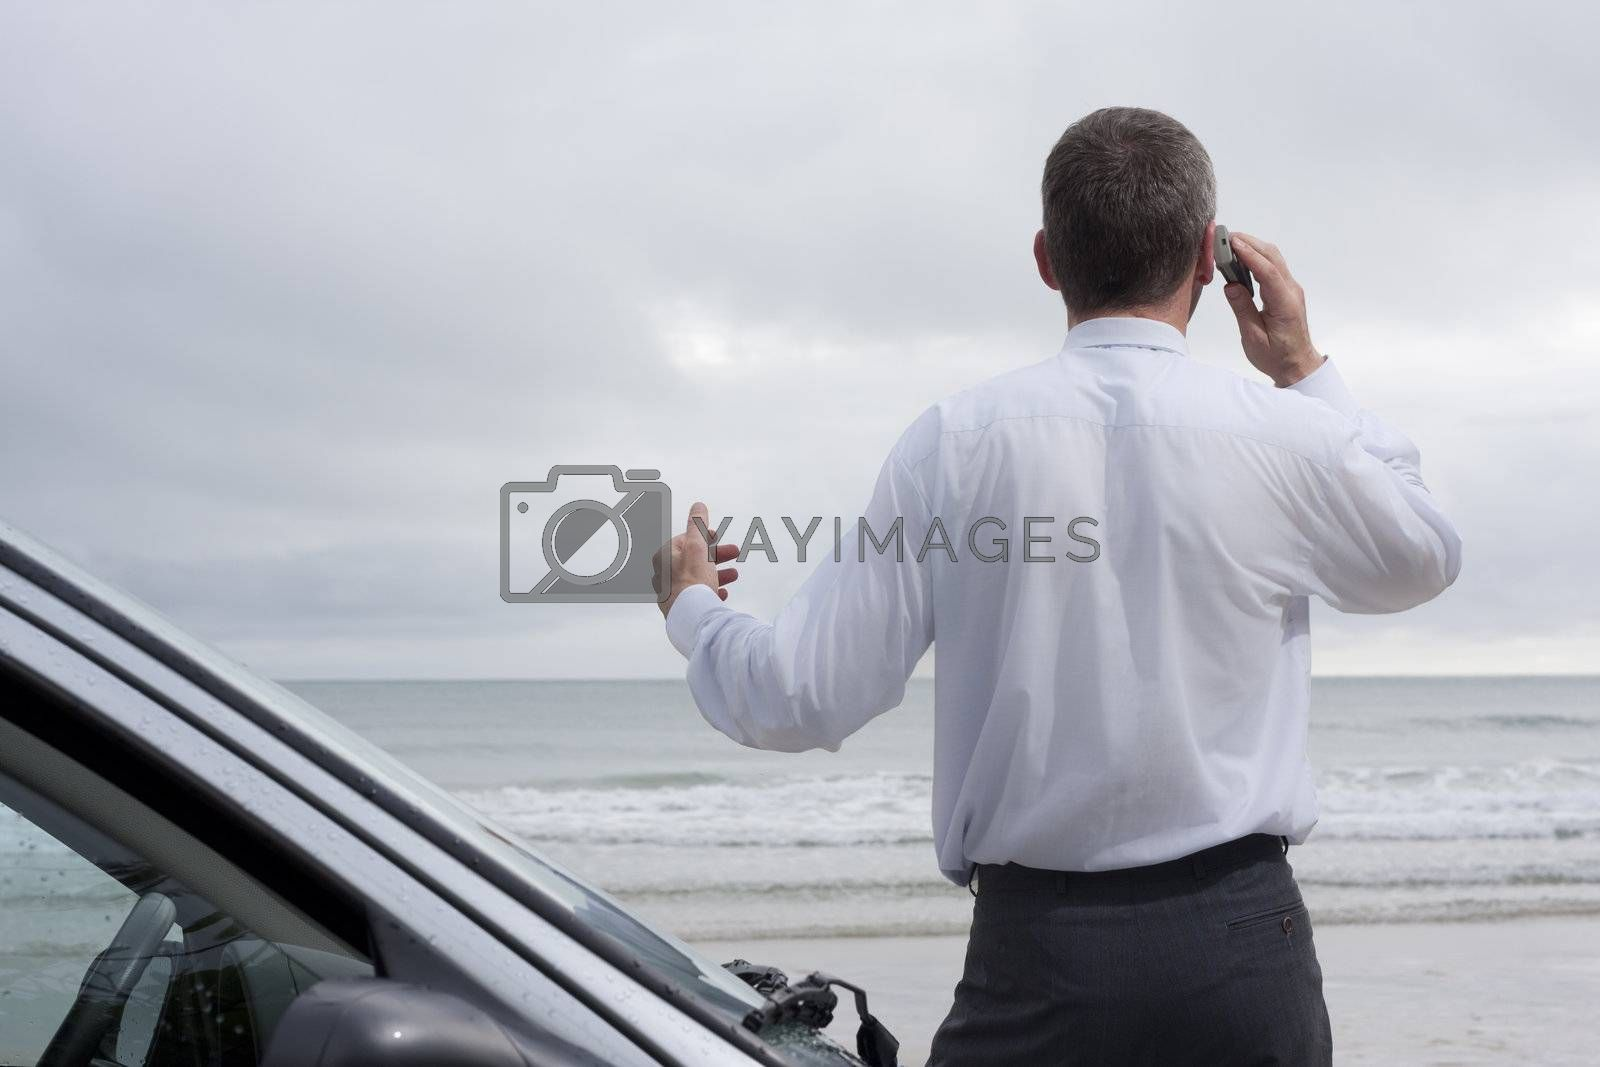 Royalty free image of Businessman talking on cell phone at the sea by ArtmannWitte